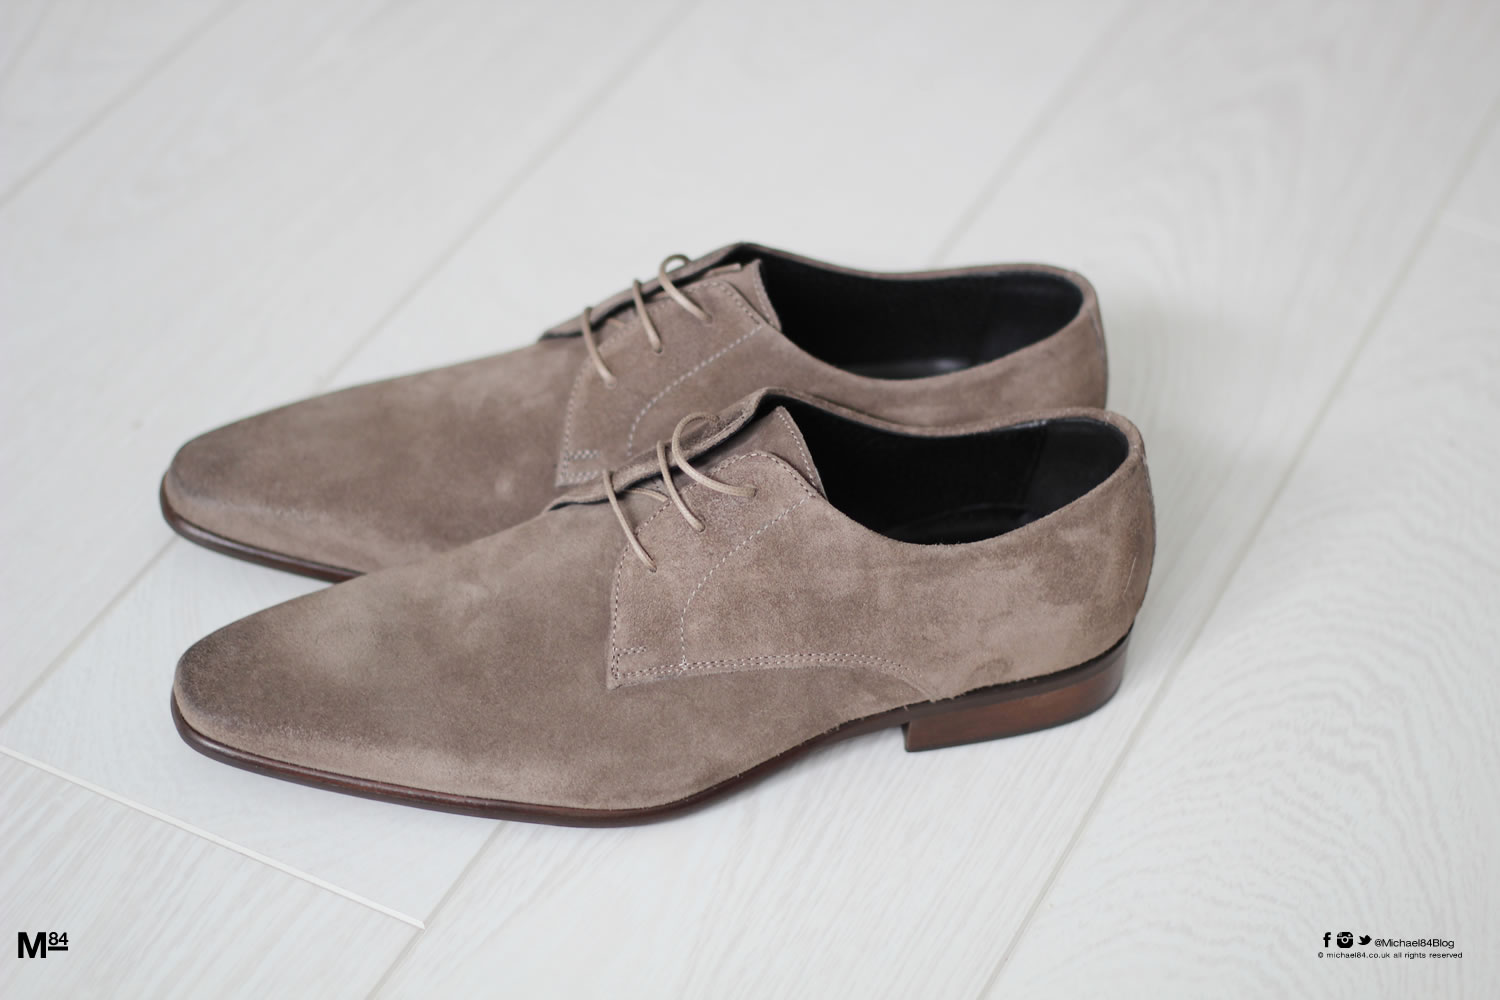 Taking Care Of Leather Shoes Reddit